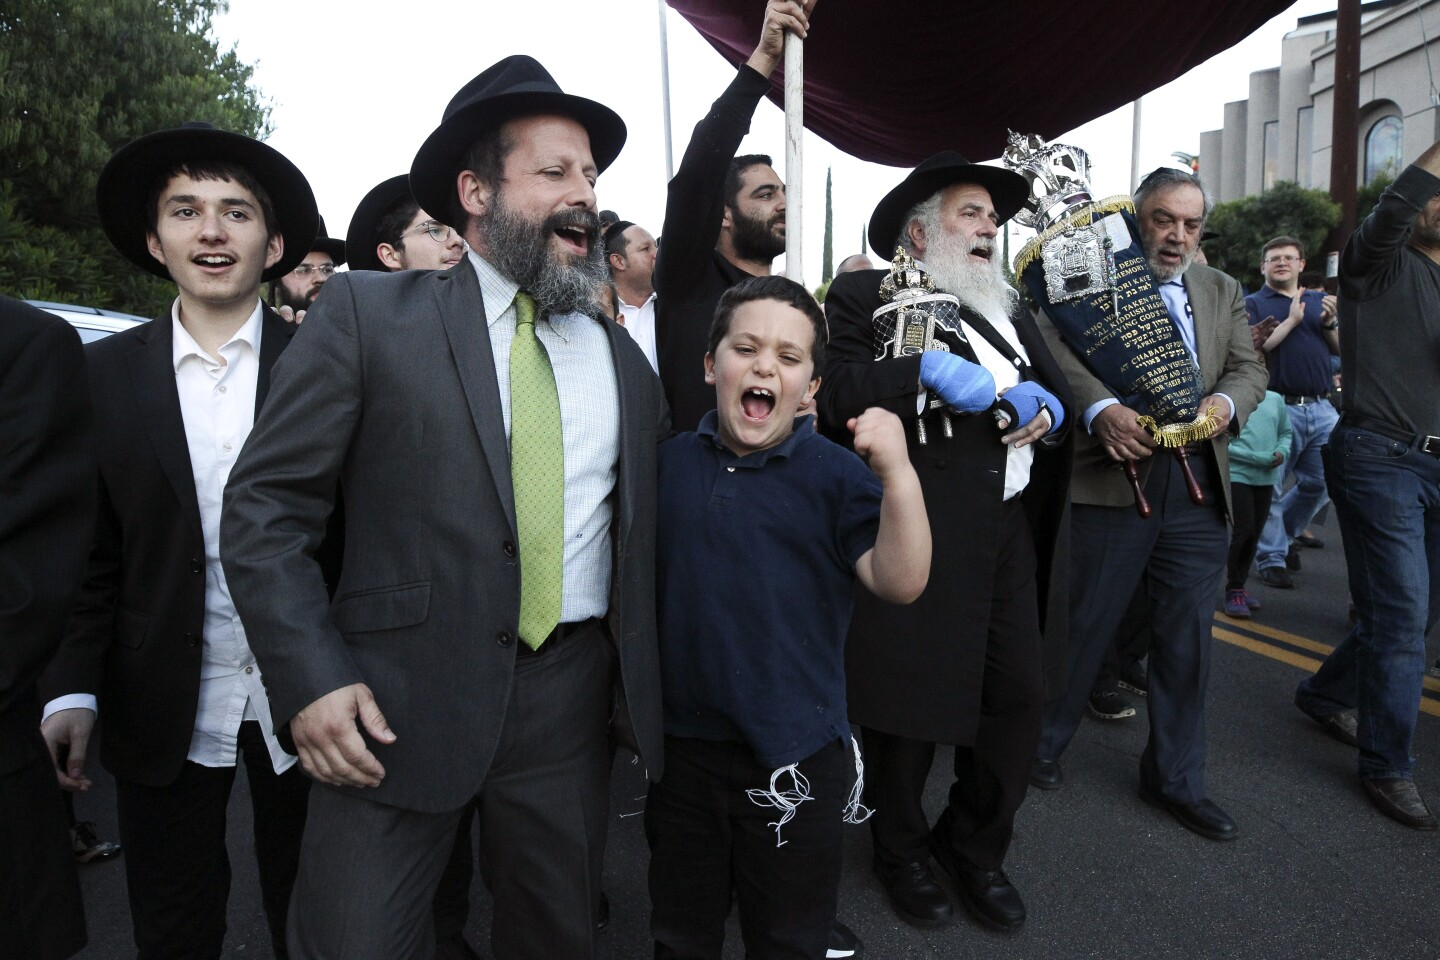 Synagogue members sing as the new torah is paraded outside of Chabad of Poway during a celebration for the completion of new torah that is dedicated to Lori Gilbert-Kaye, who was killed when a gunman attacked the synagogue last April, at Chabad of Poway on Wednesday, May 22, 2019 in Poway, California.